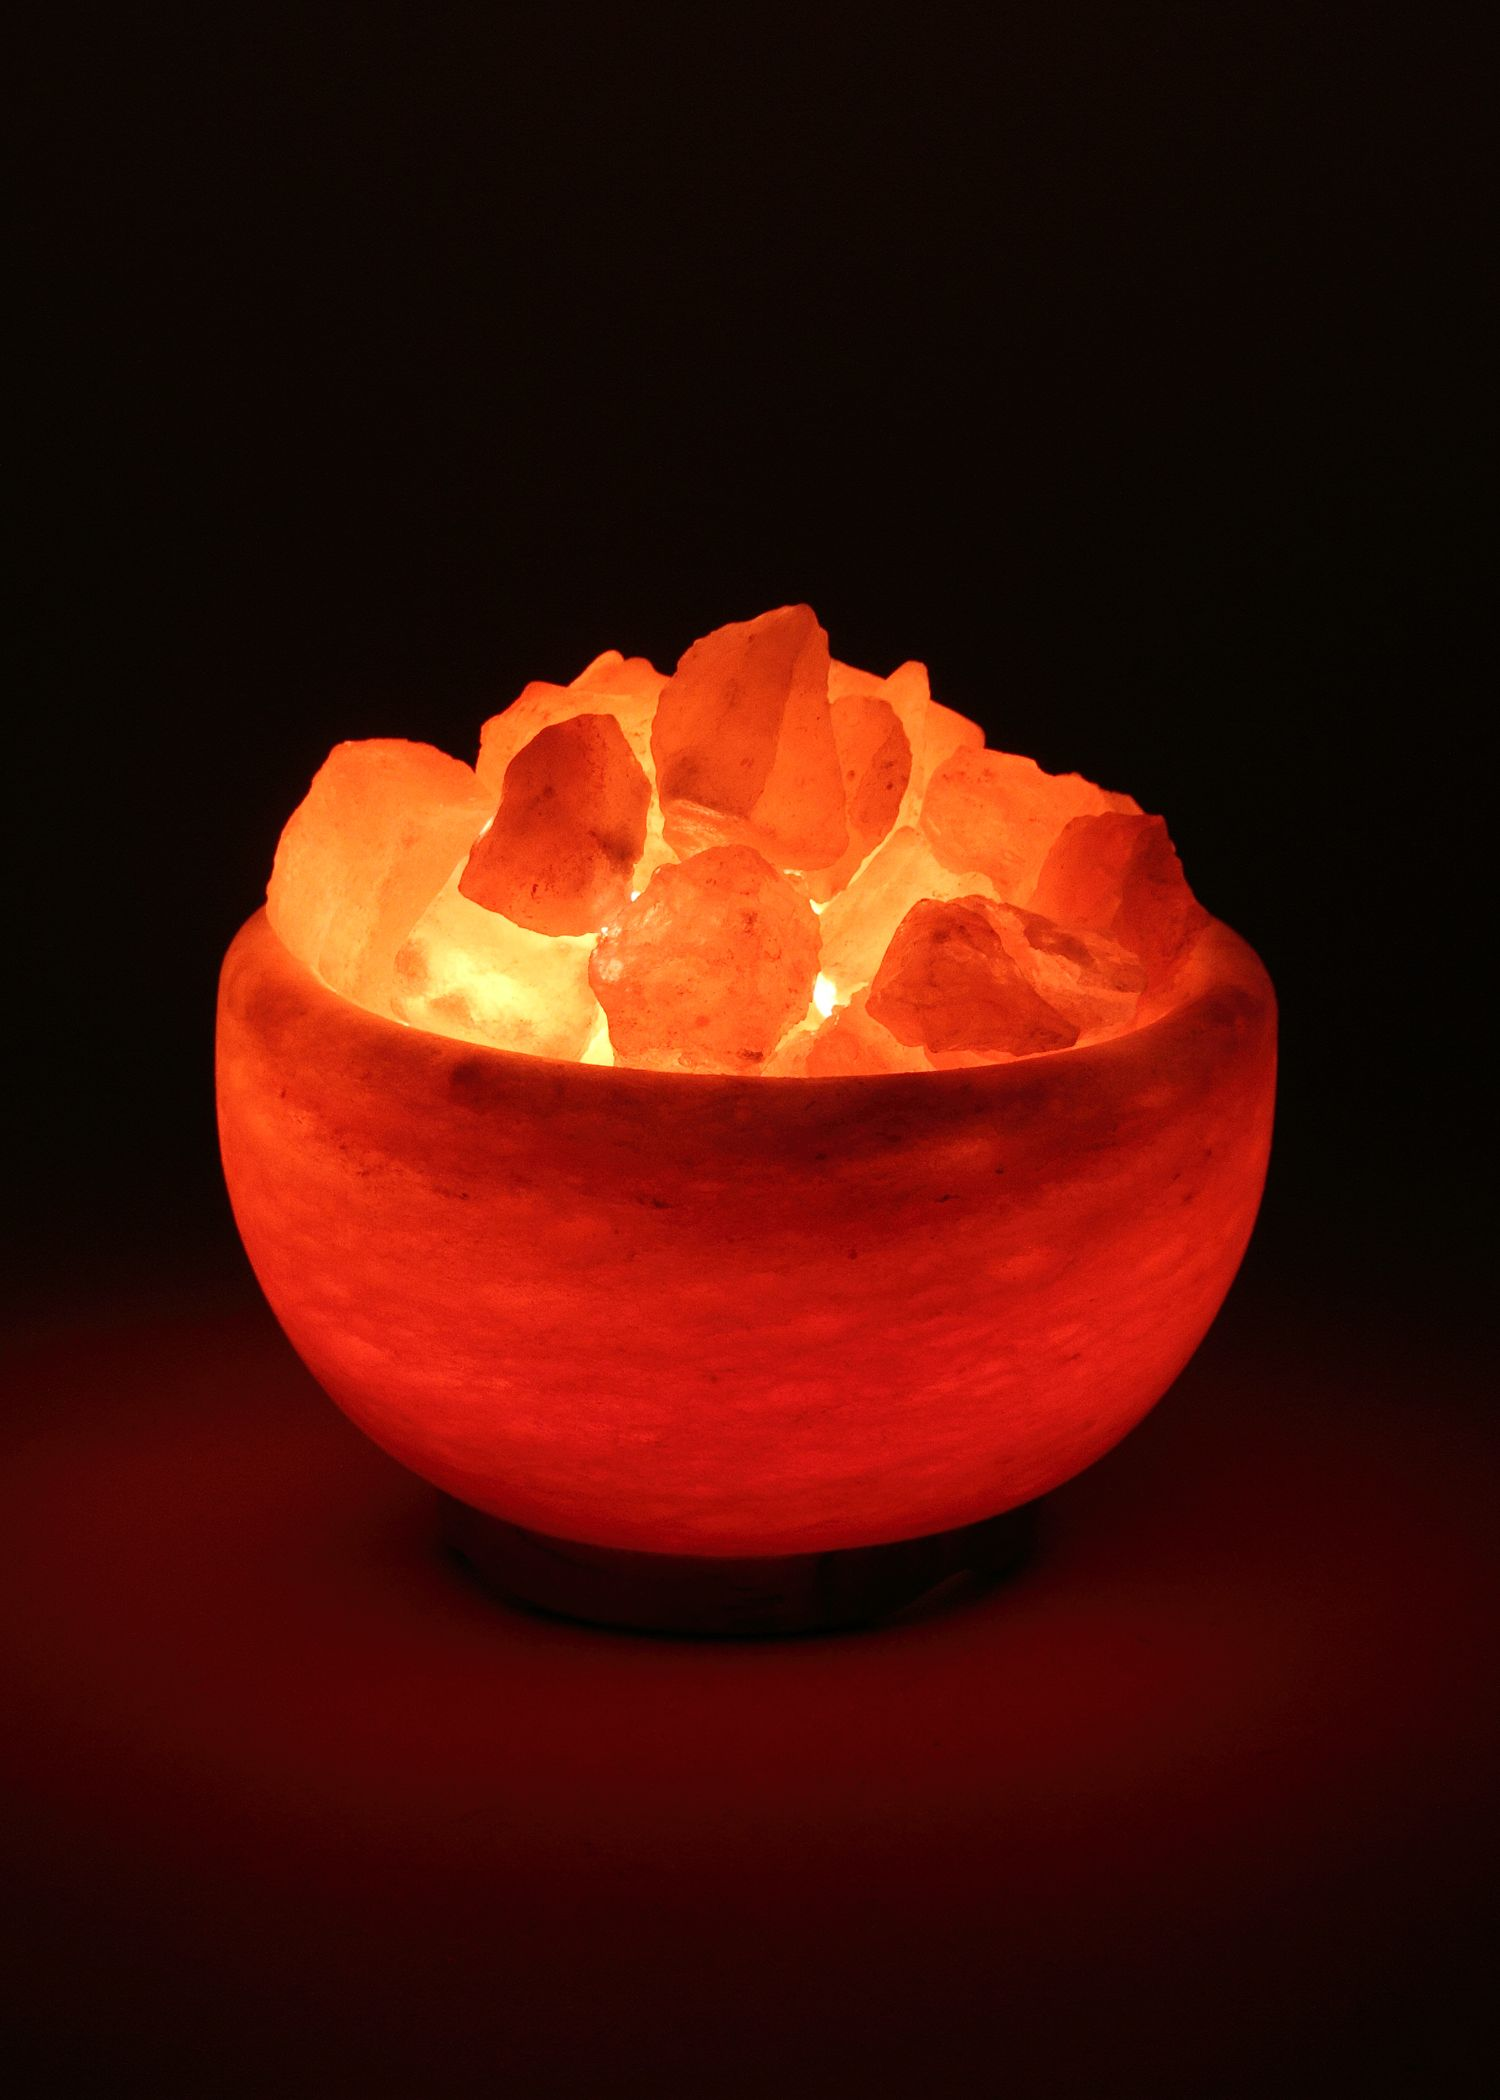 Himalayan Salt Lamps Wholesale Alluring Healthy Life Cycle Retail And Wholesale Himalayan Salt Lamps And Review